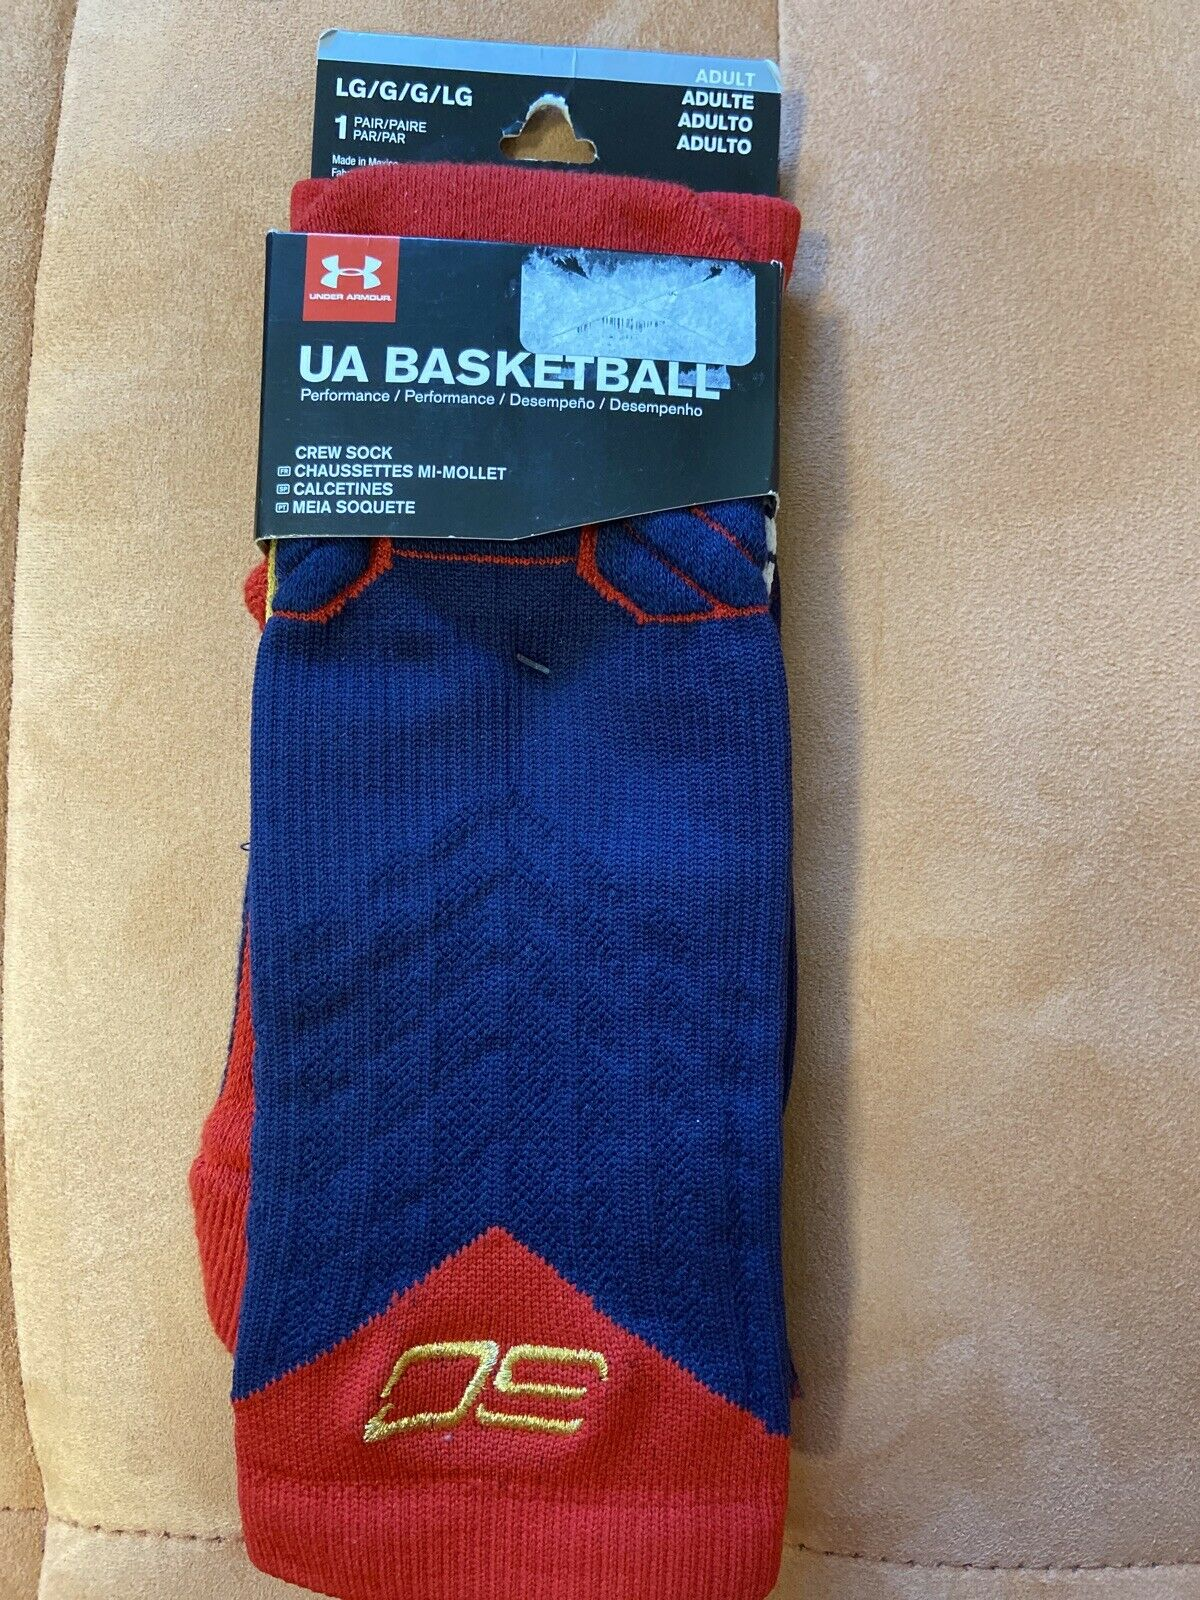 basura tijeras barbería  Under armour Stephen Curry Basketball Crew Men's Socks, Size L - Blue for  sale online | eBay